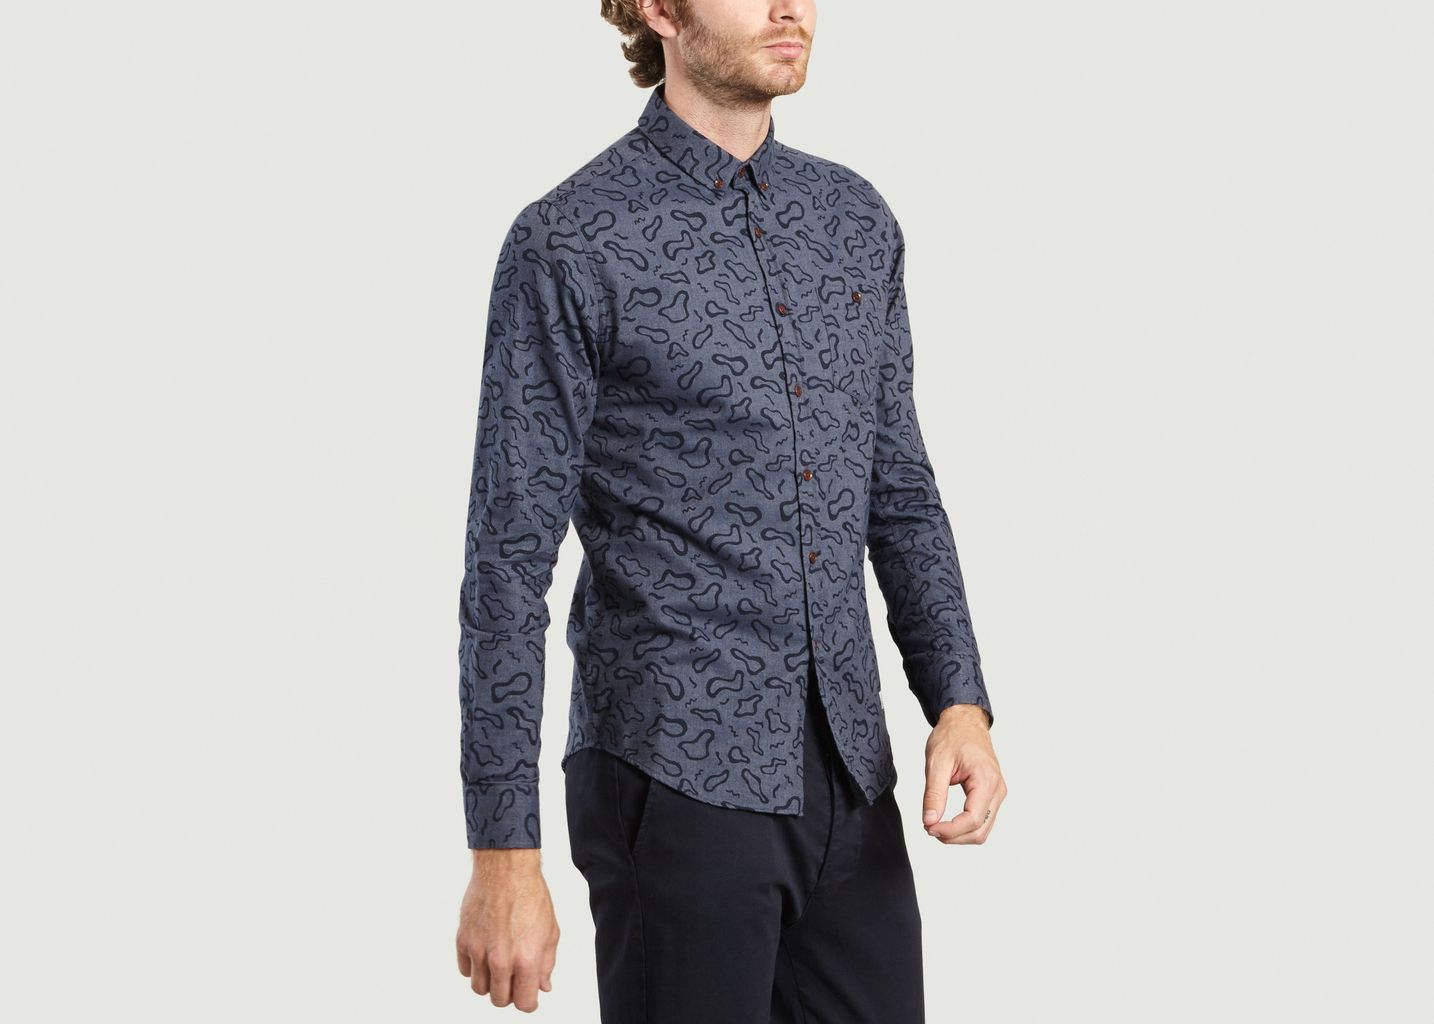 Chemise Songes - Olow